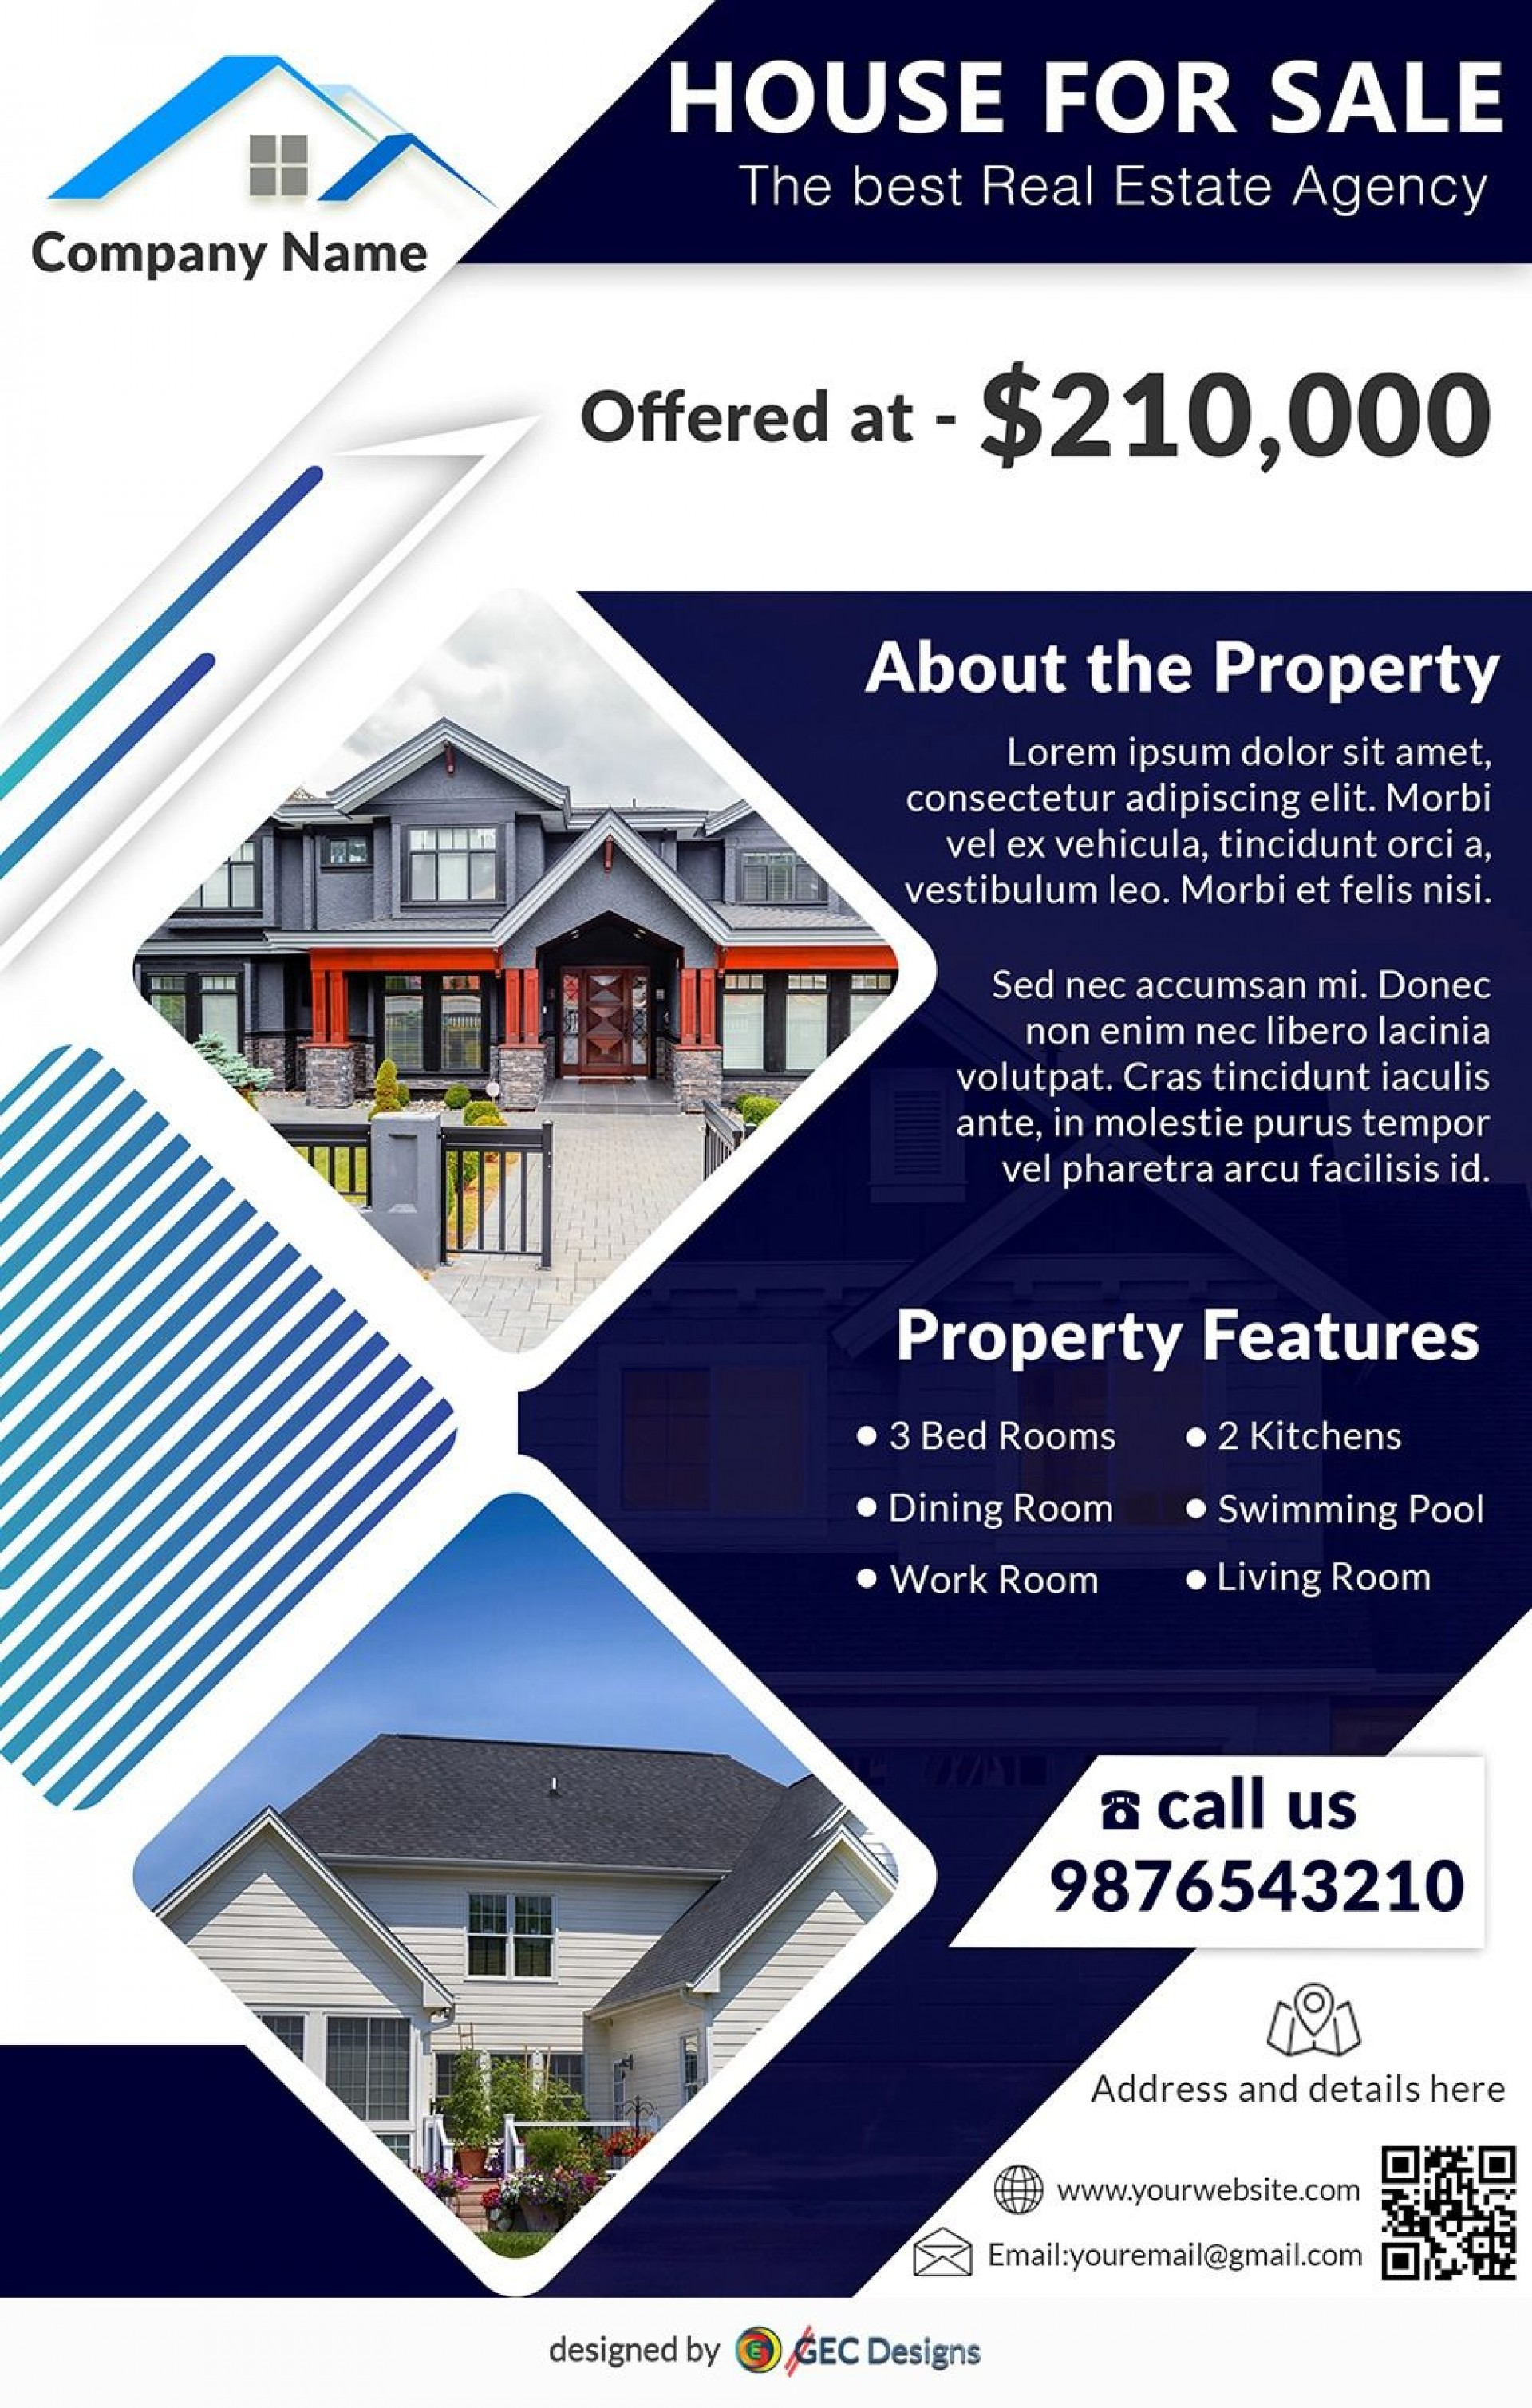 006 Archaicawful House For Sale Flyer Template Highest Clarity  Free Real Estate Example By Owner1920